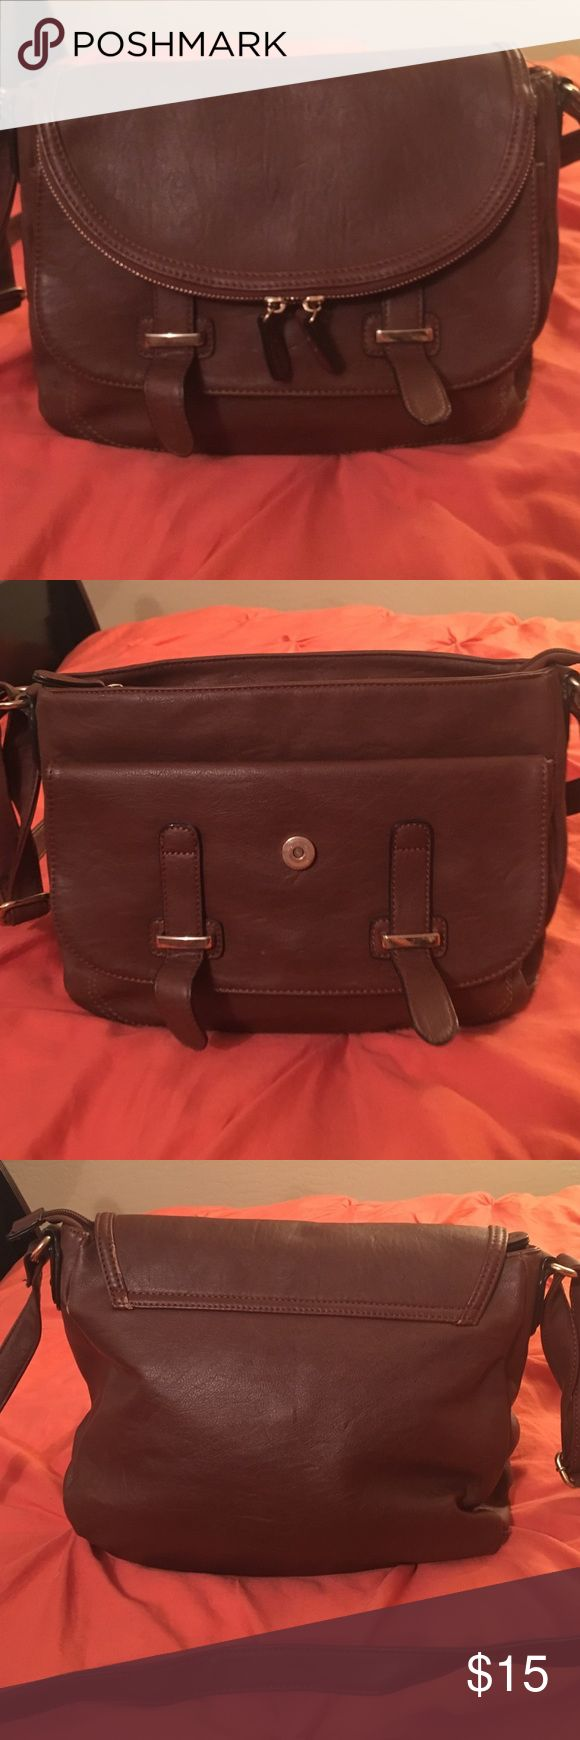 Brown ALDO crossbody bag Brown leather ALDO crossbody bag. Great condition on outside, dirty on side near zipper, mostly pencil from my school work. Aldo Bags Crossbody Bags